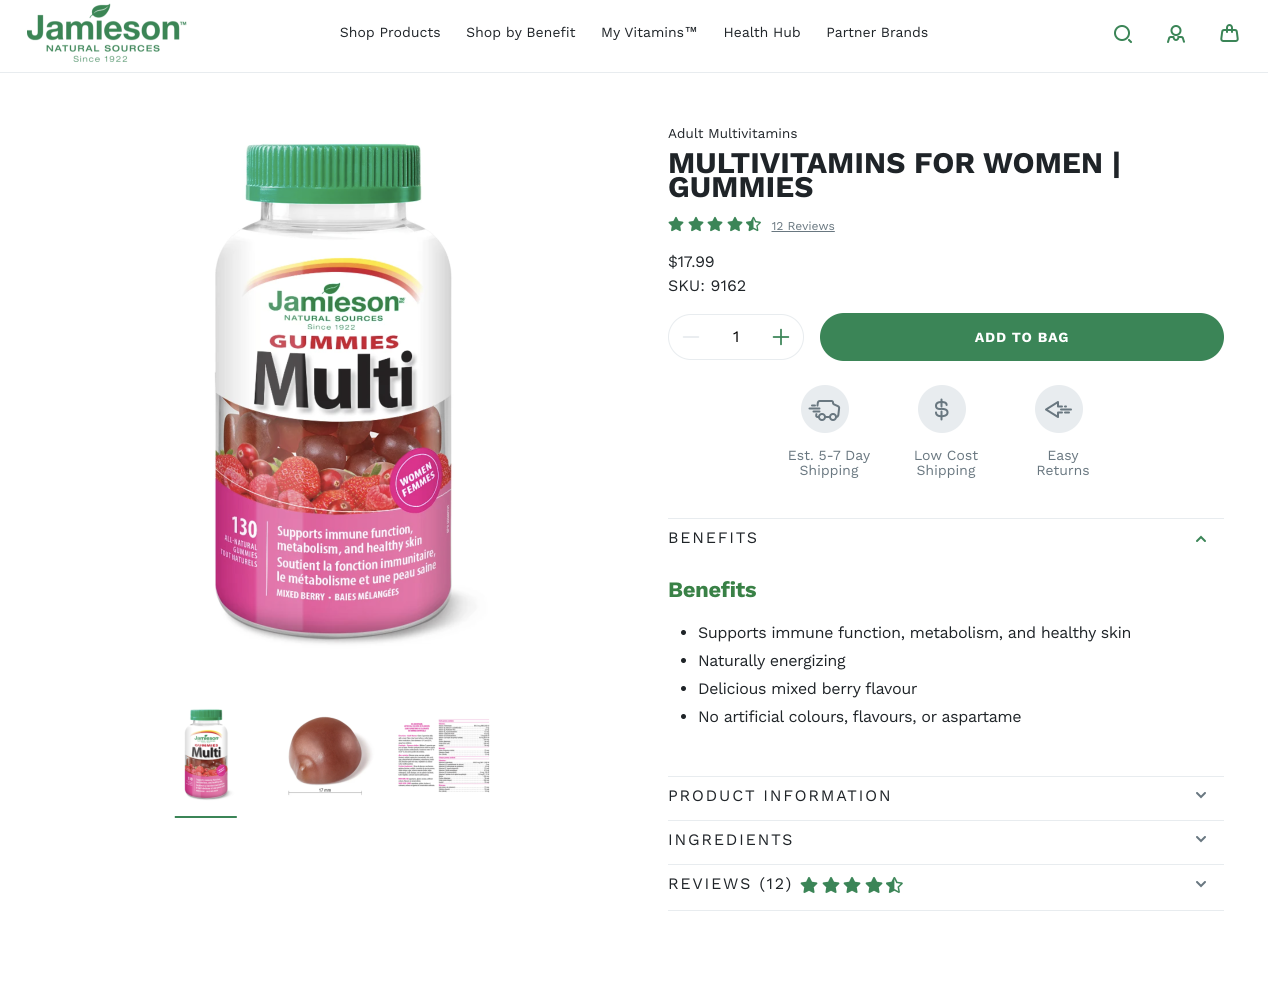 Multivitamins for women with ingredients list and reviews.